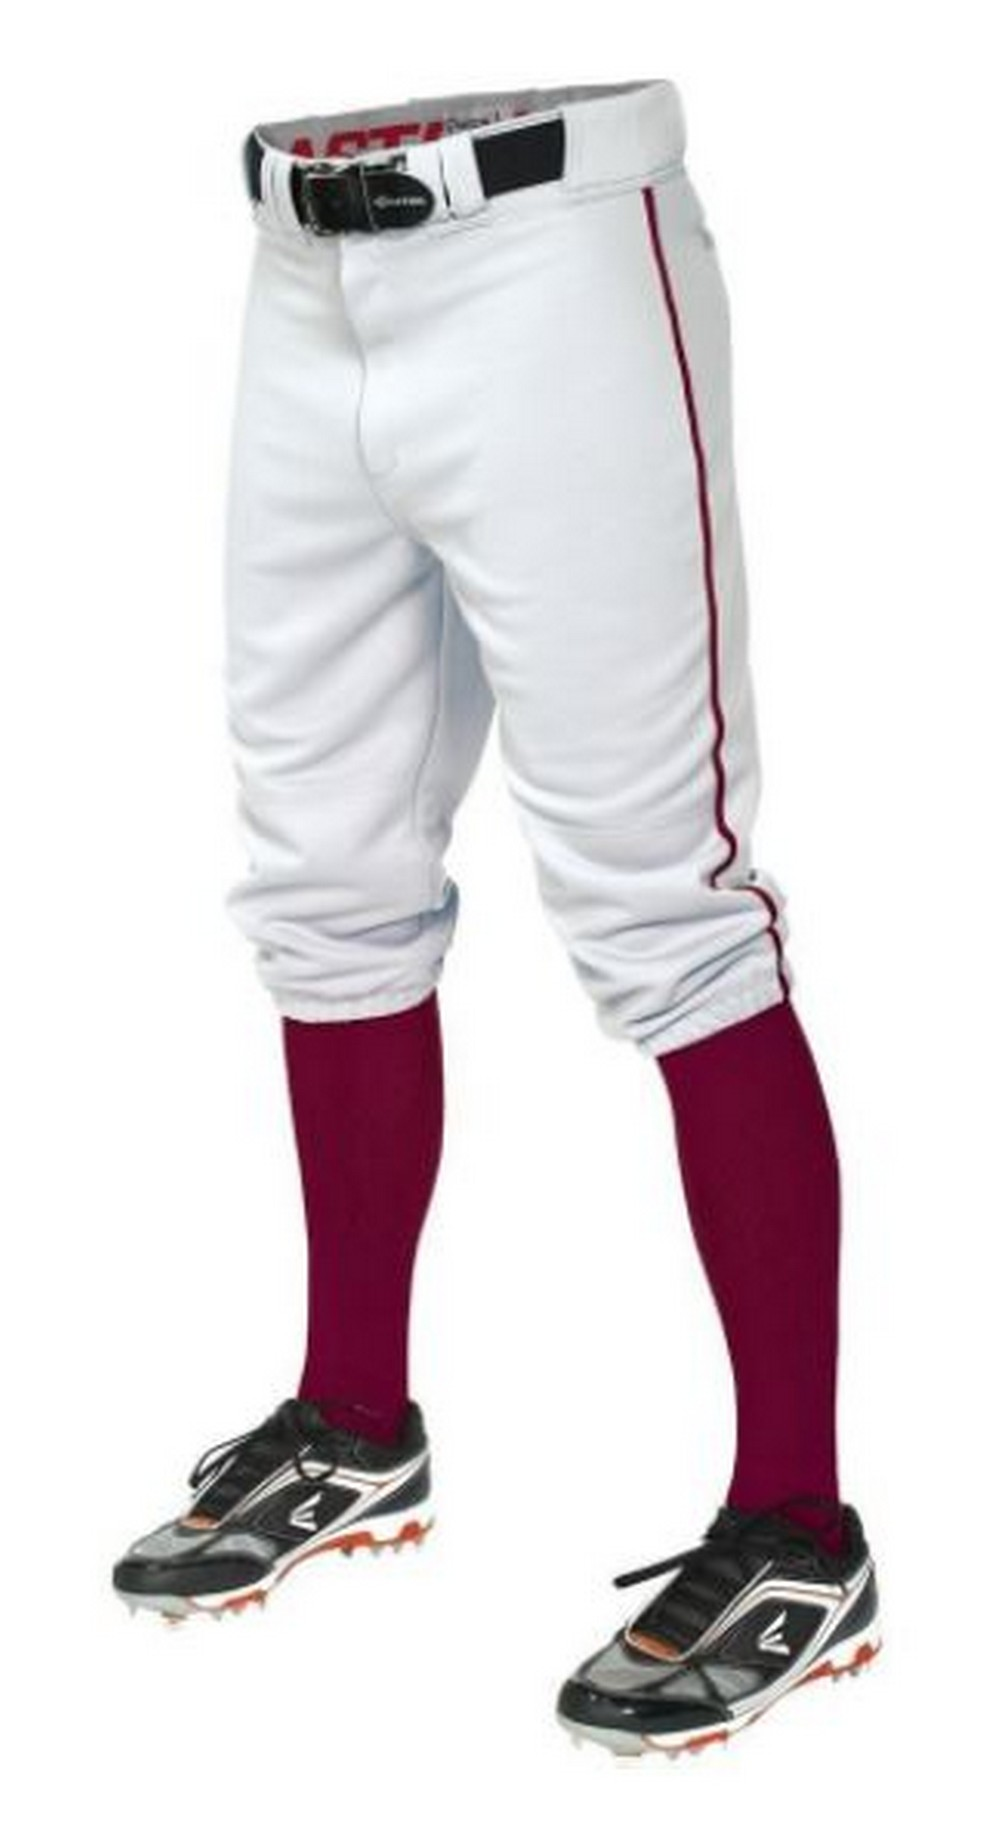 Easton Pro + Knicker Piped Baseball Pants - Men's Baseball - White/Maroon 16710502